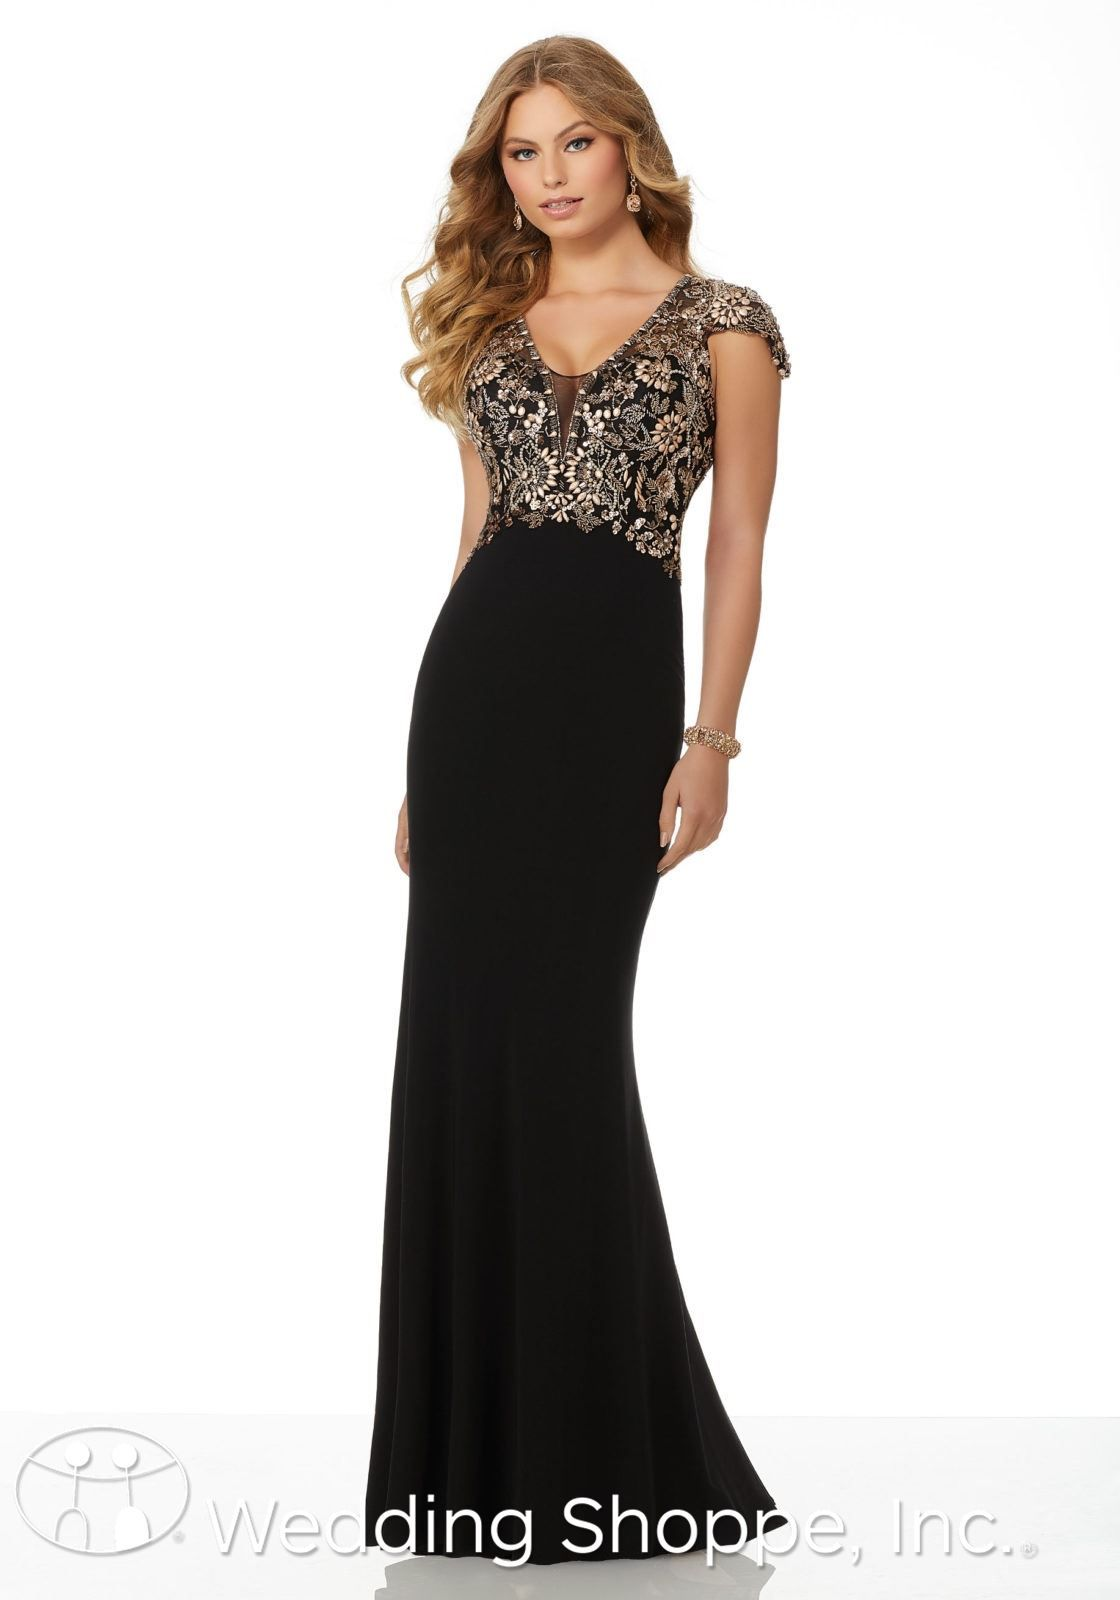 b0361f847eb Slim and form-fitting beaded prom dress with a partially open back